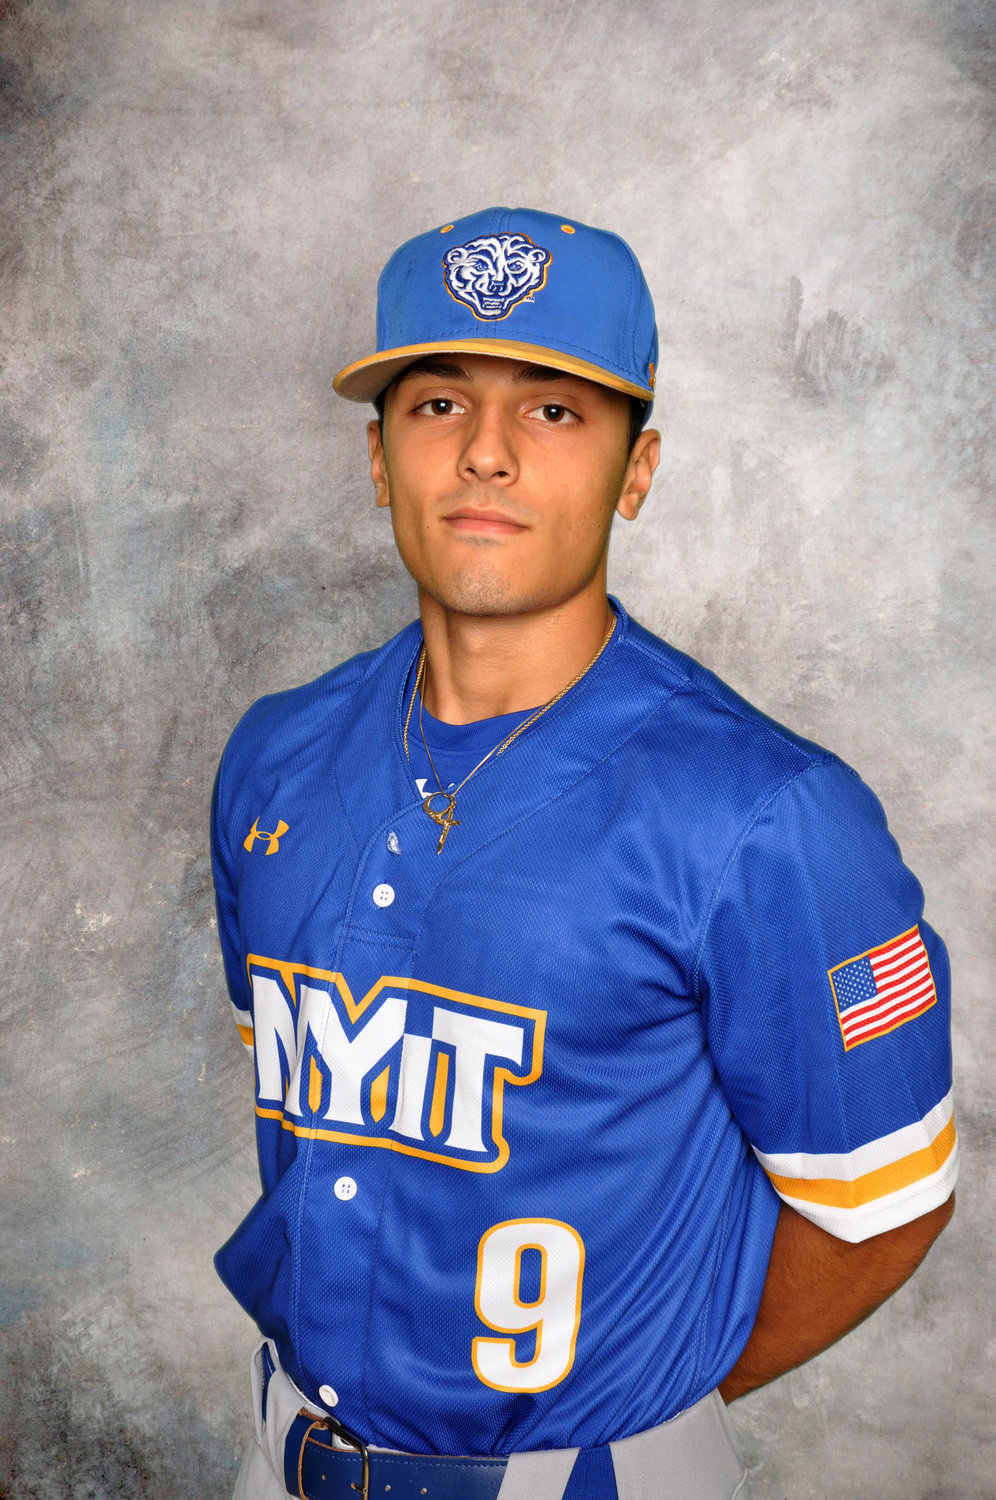 EJ Cumbo, an alumnus of W.T. Clarke High School, is a redshirt freshman on the New York Institute of Technology baseball team.